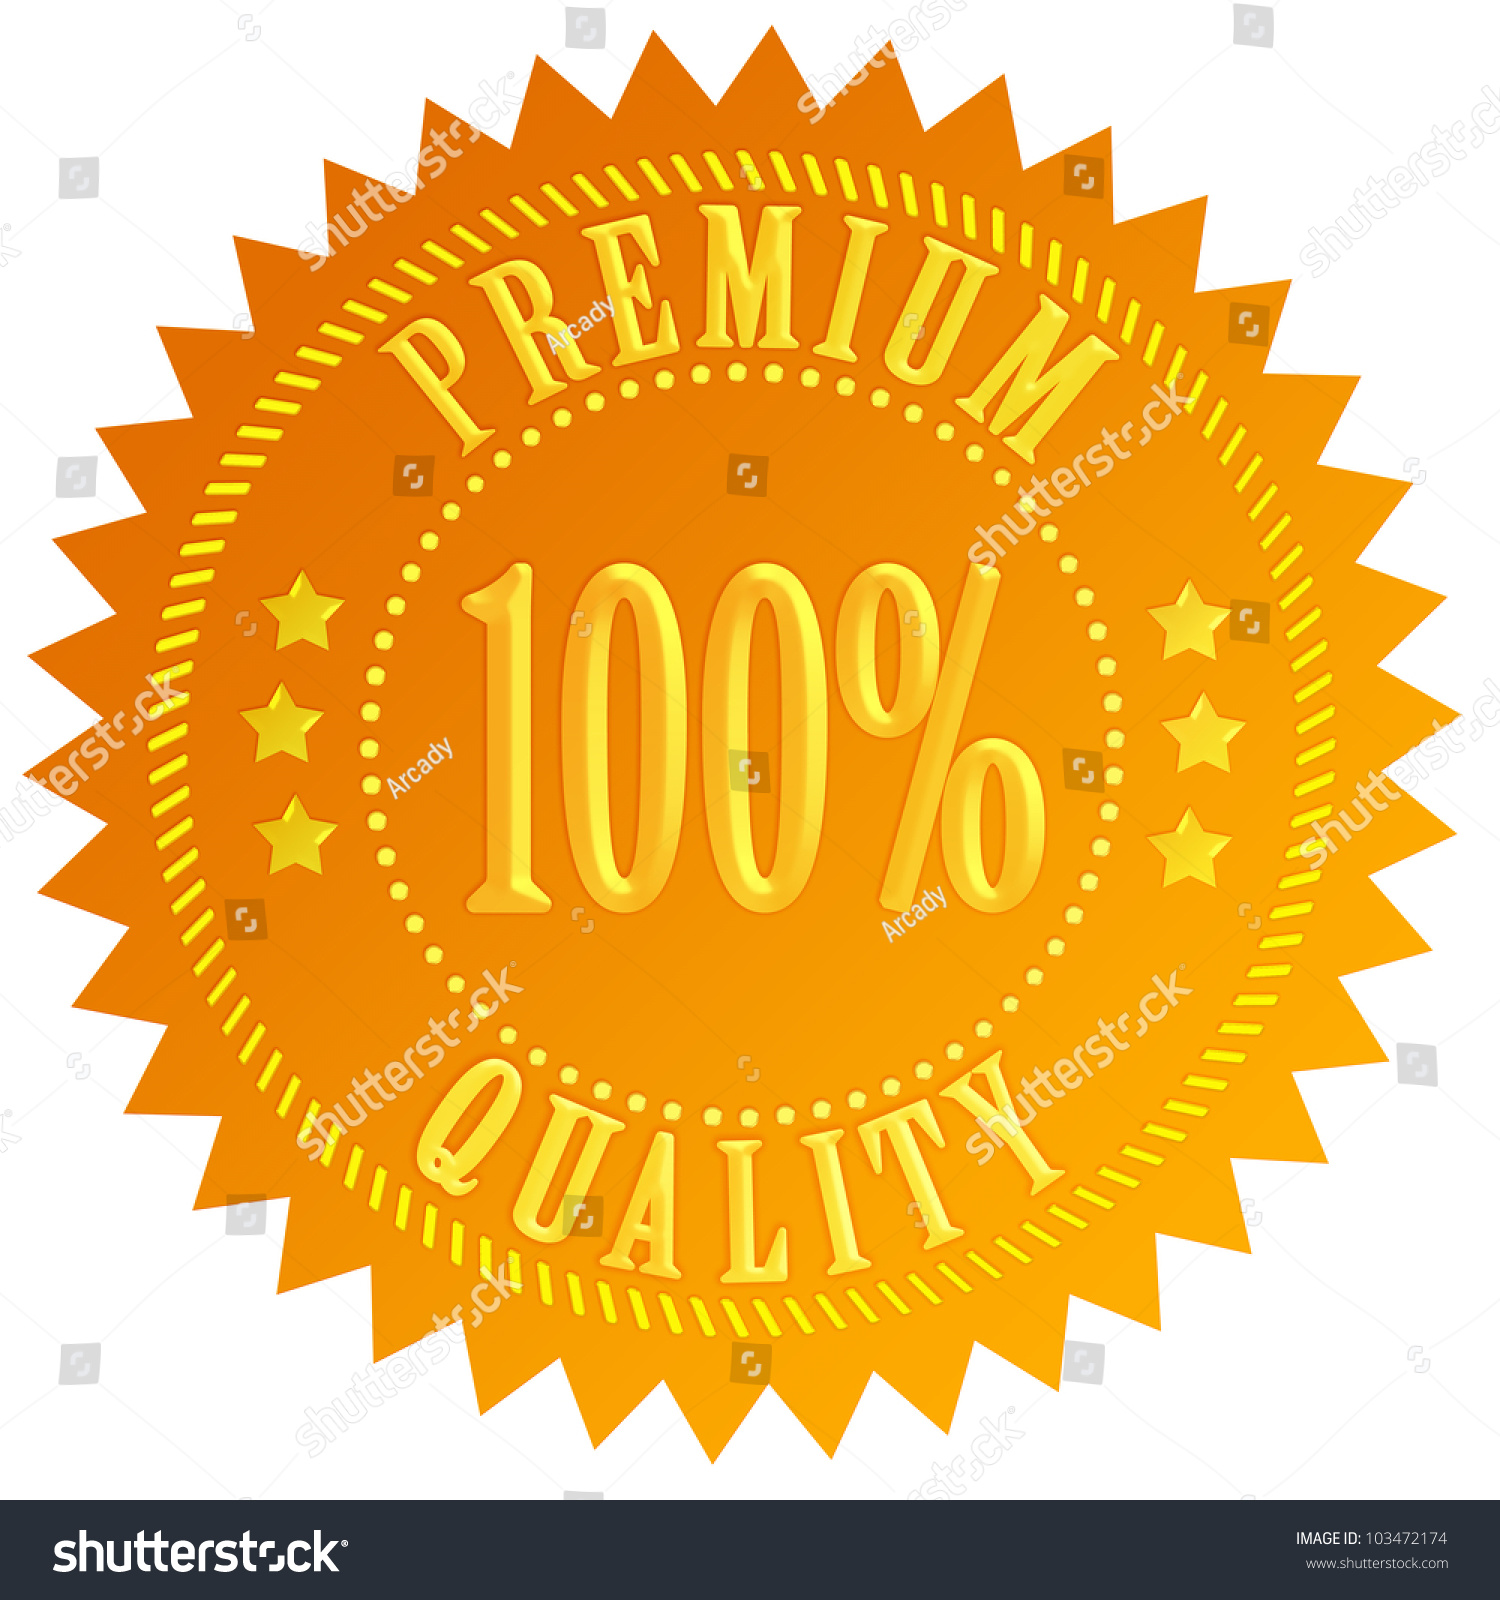 gold vector stock seal depositphotos quality illustration trusted arcady